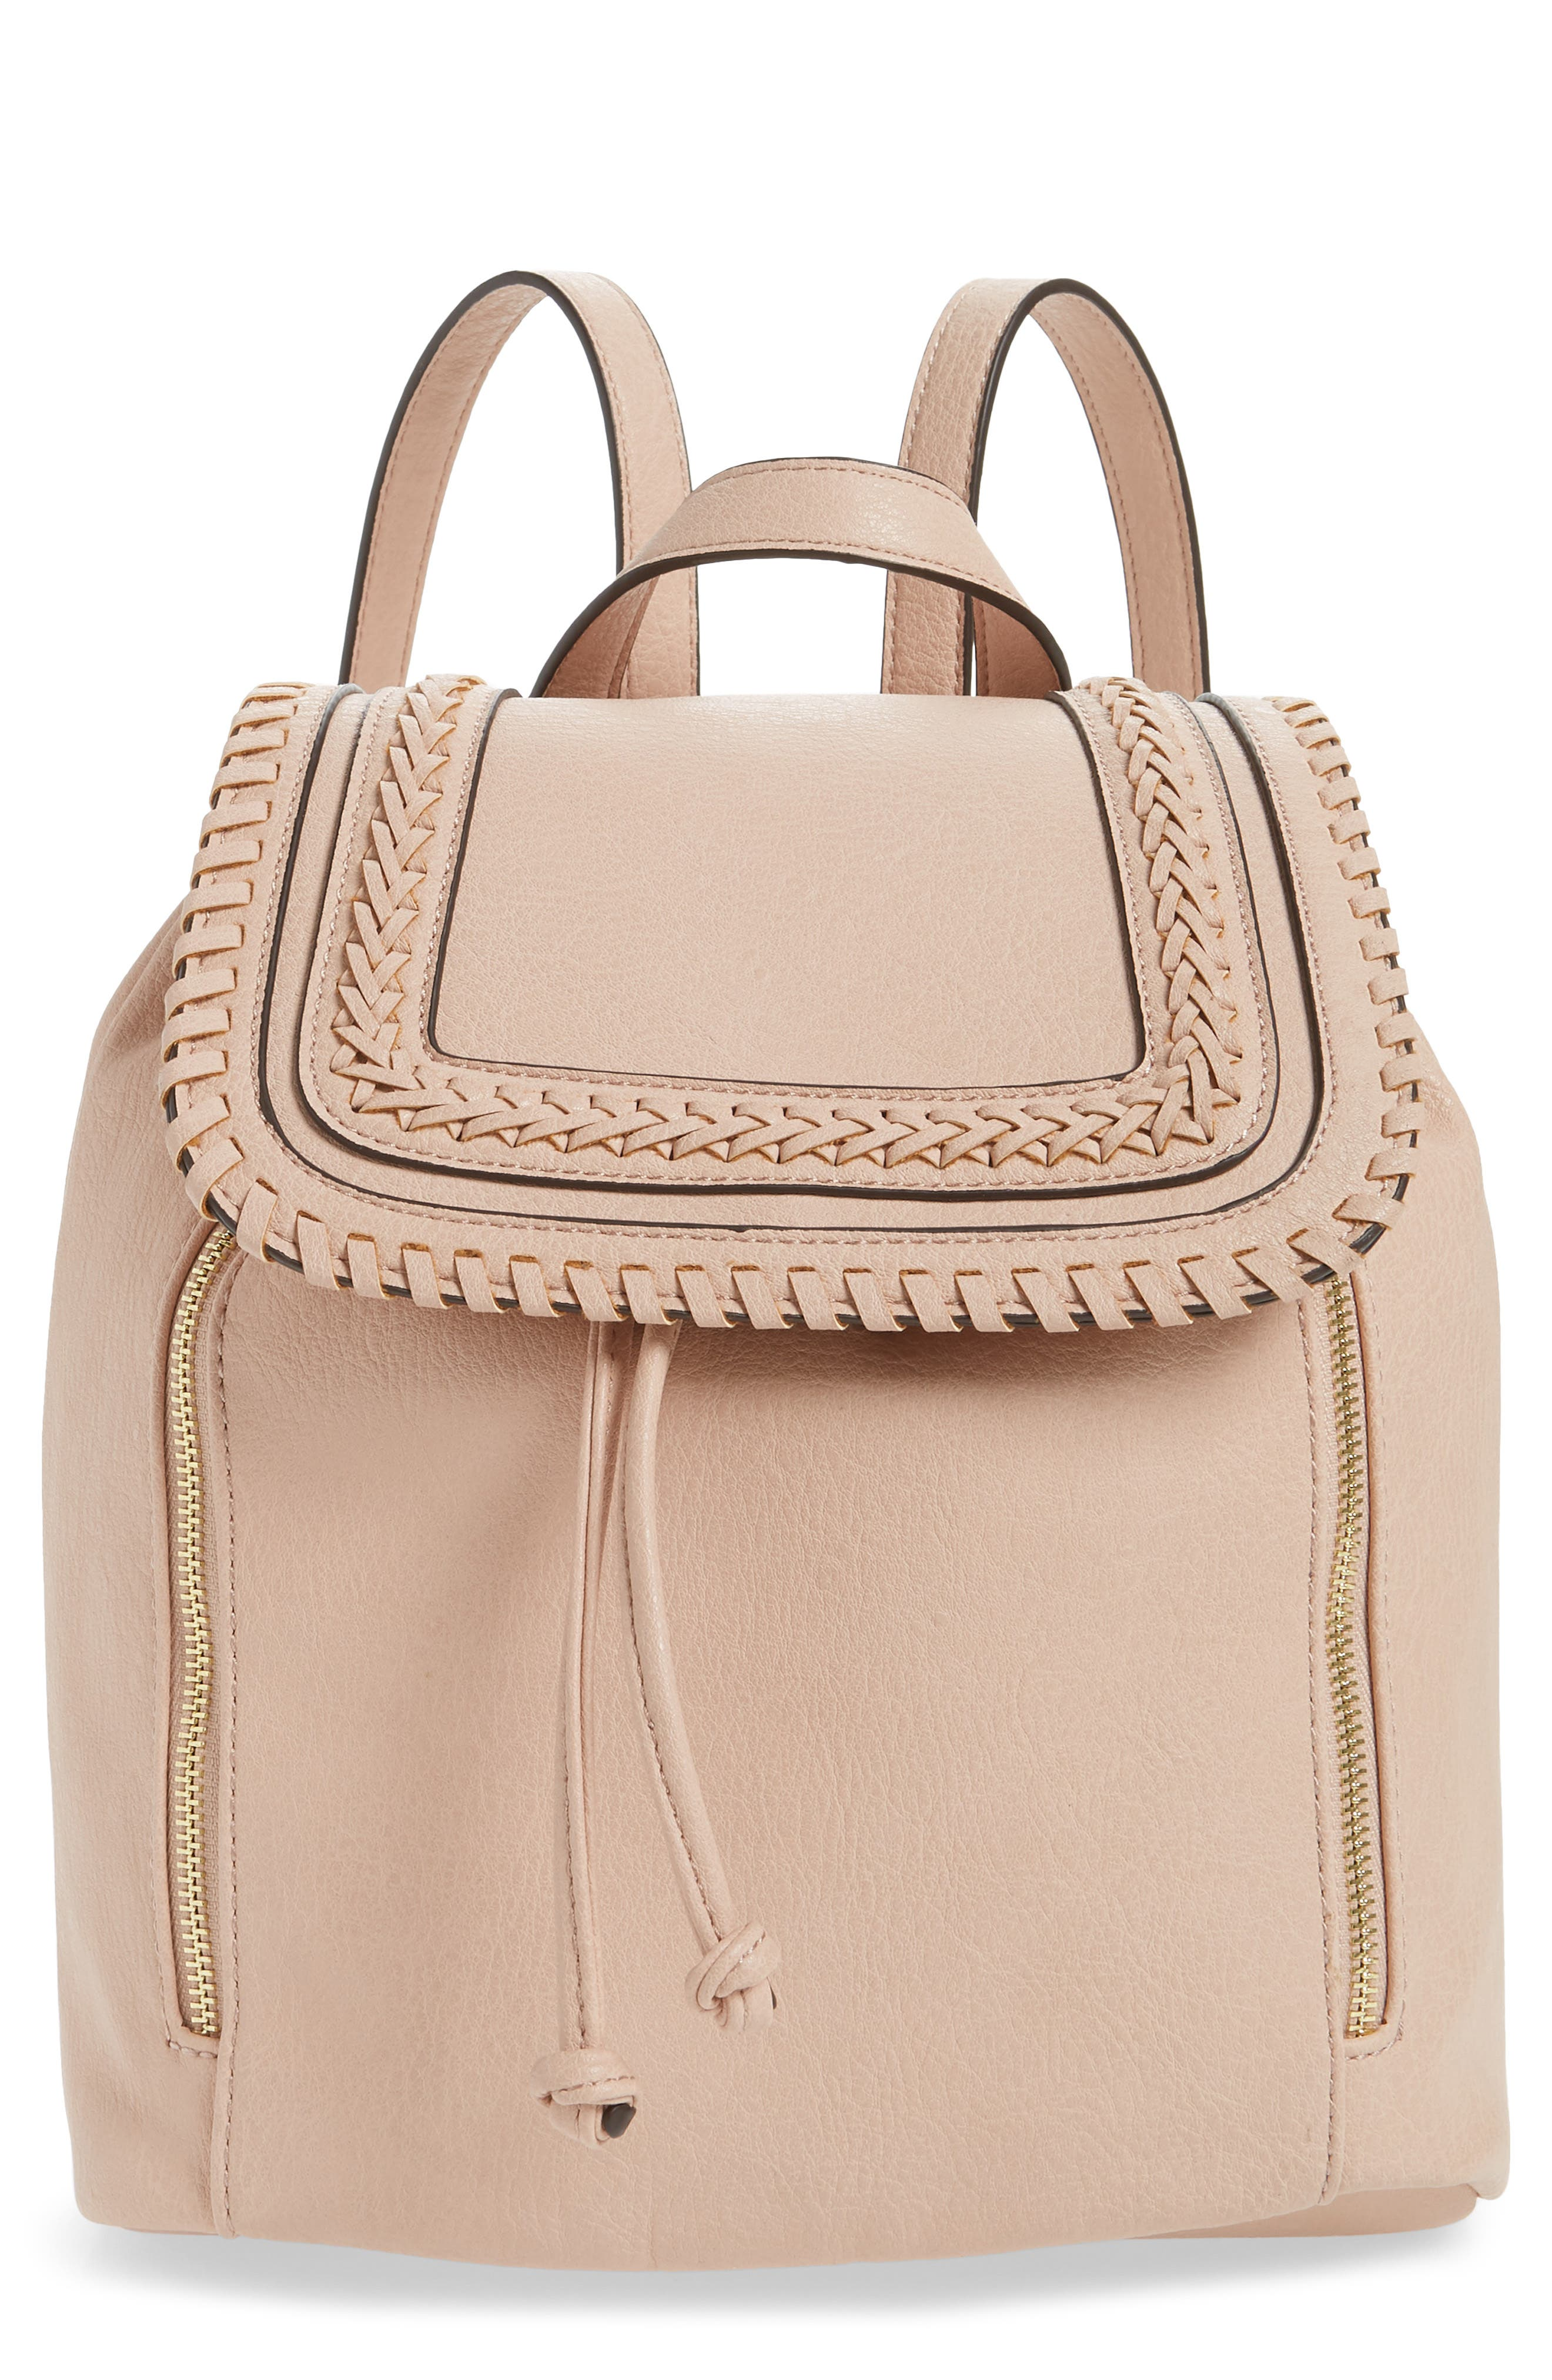 Sole Society Destin Faux Leather Backpack - Pink